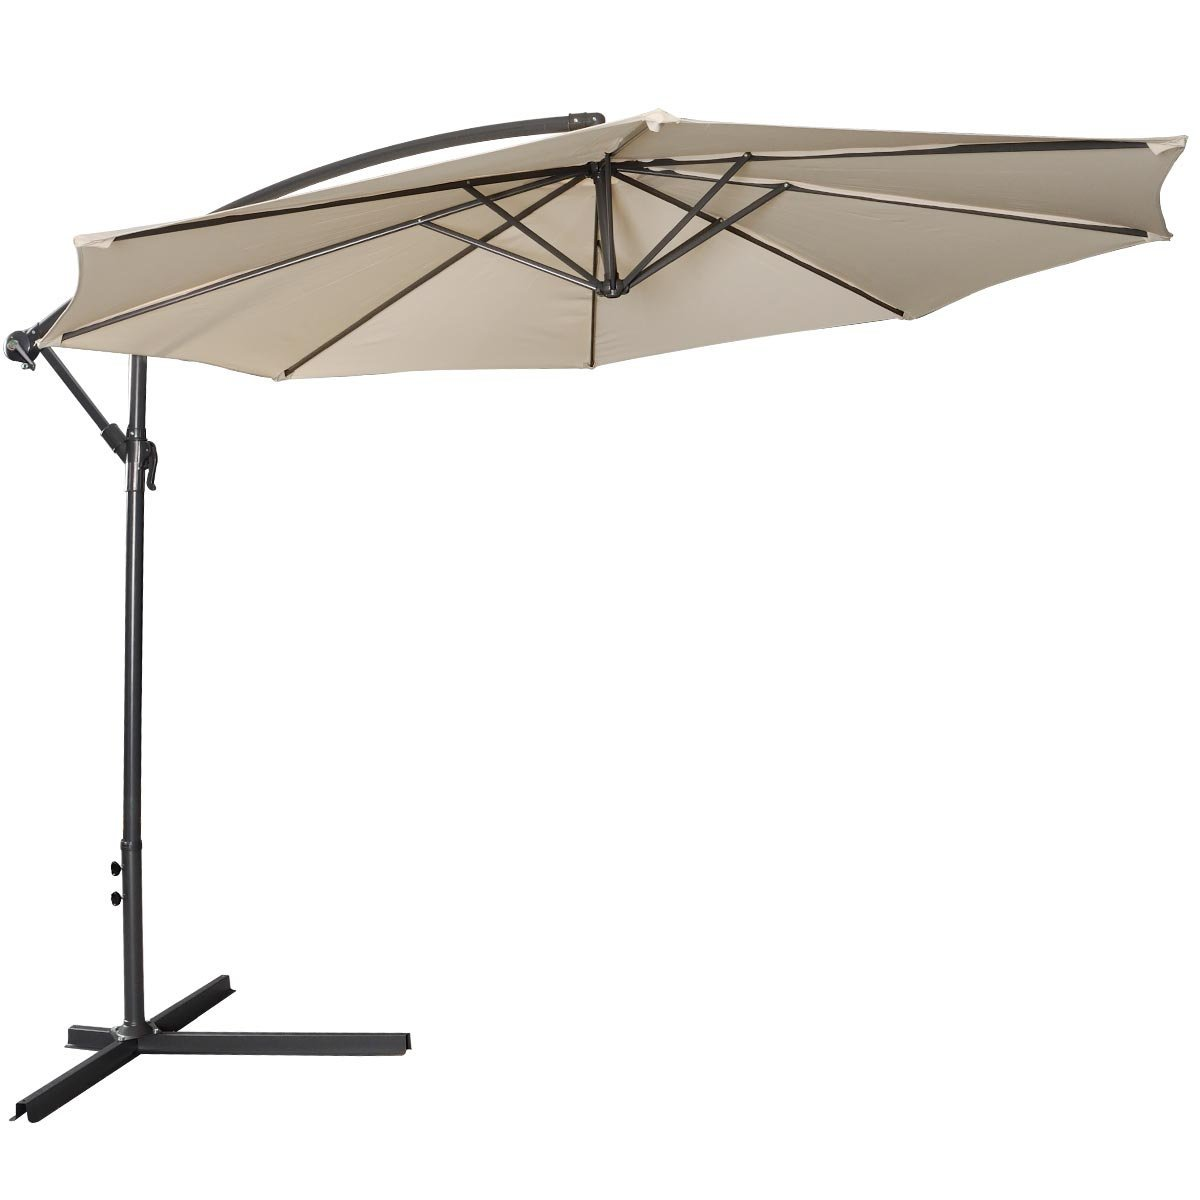 Top 10 Popular Offset Umbrella Reviews — The Perfect Shopping Guide (2019)